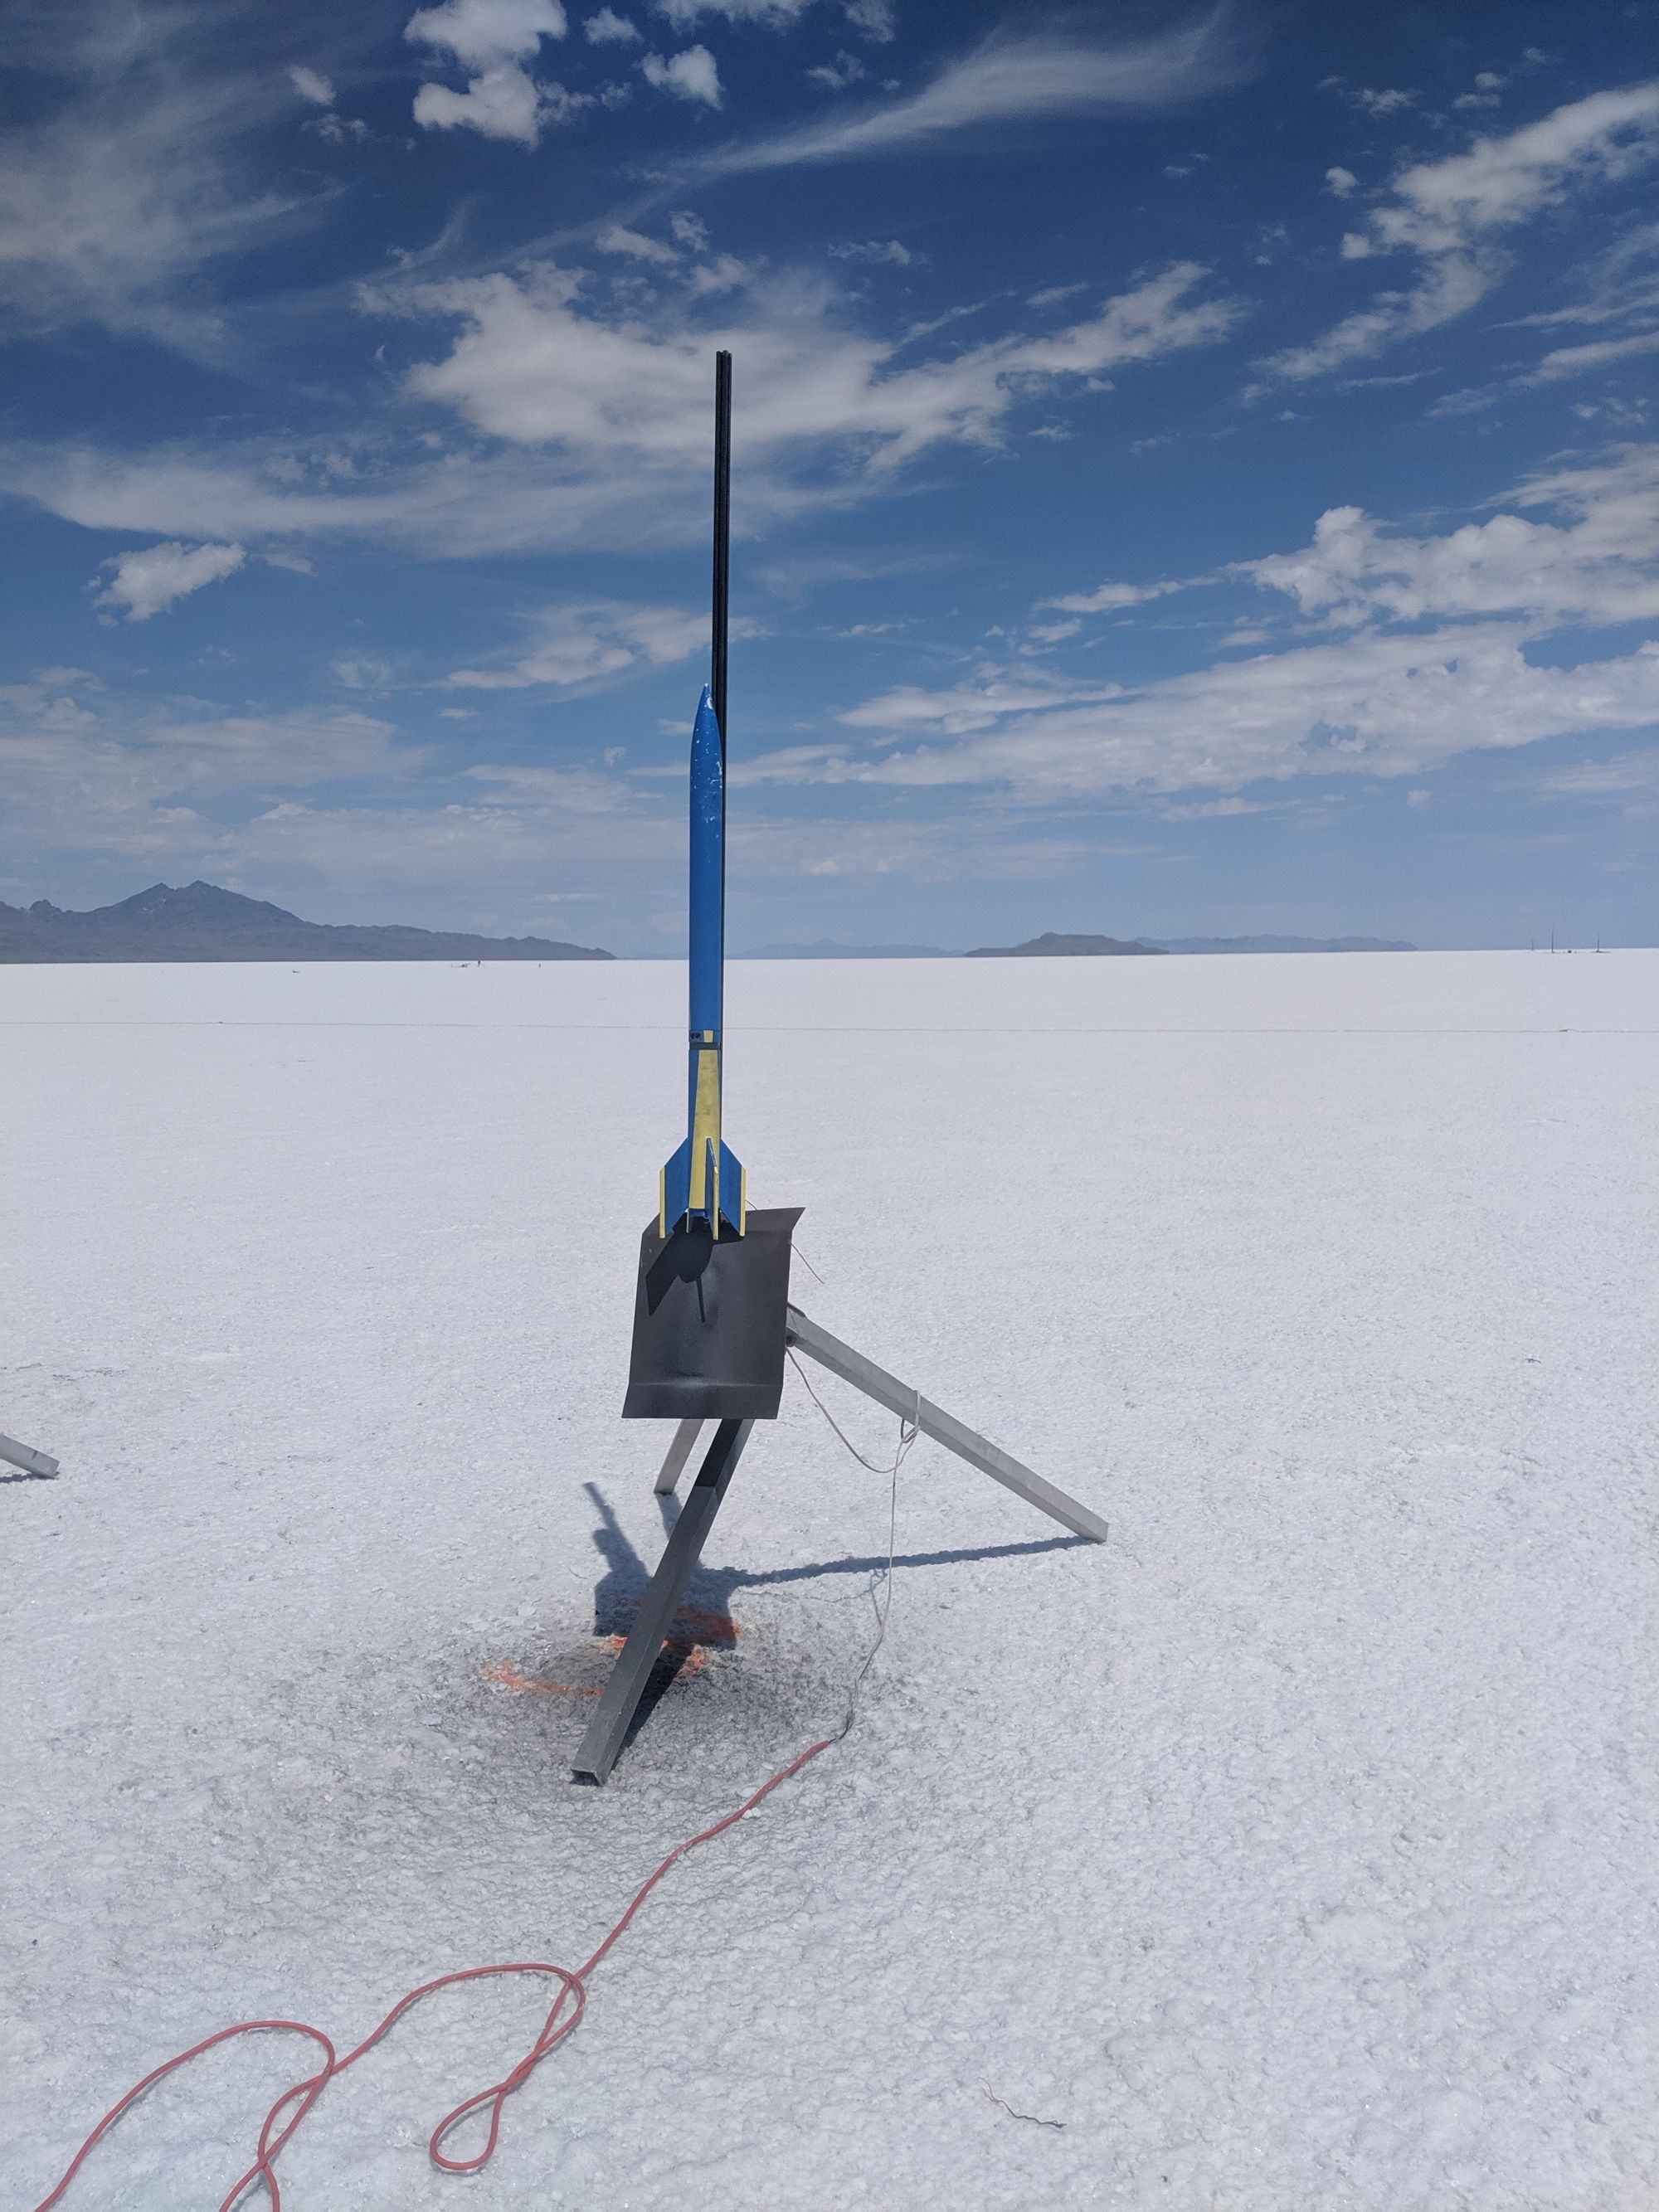 High-Power Rocketry Level 1 Certification Flight